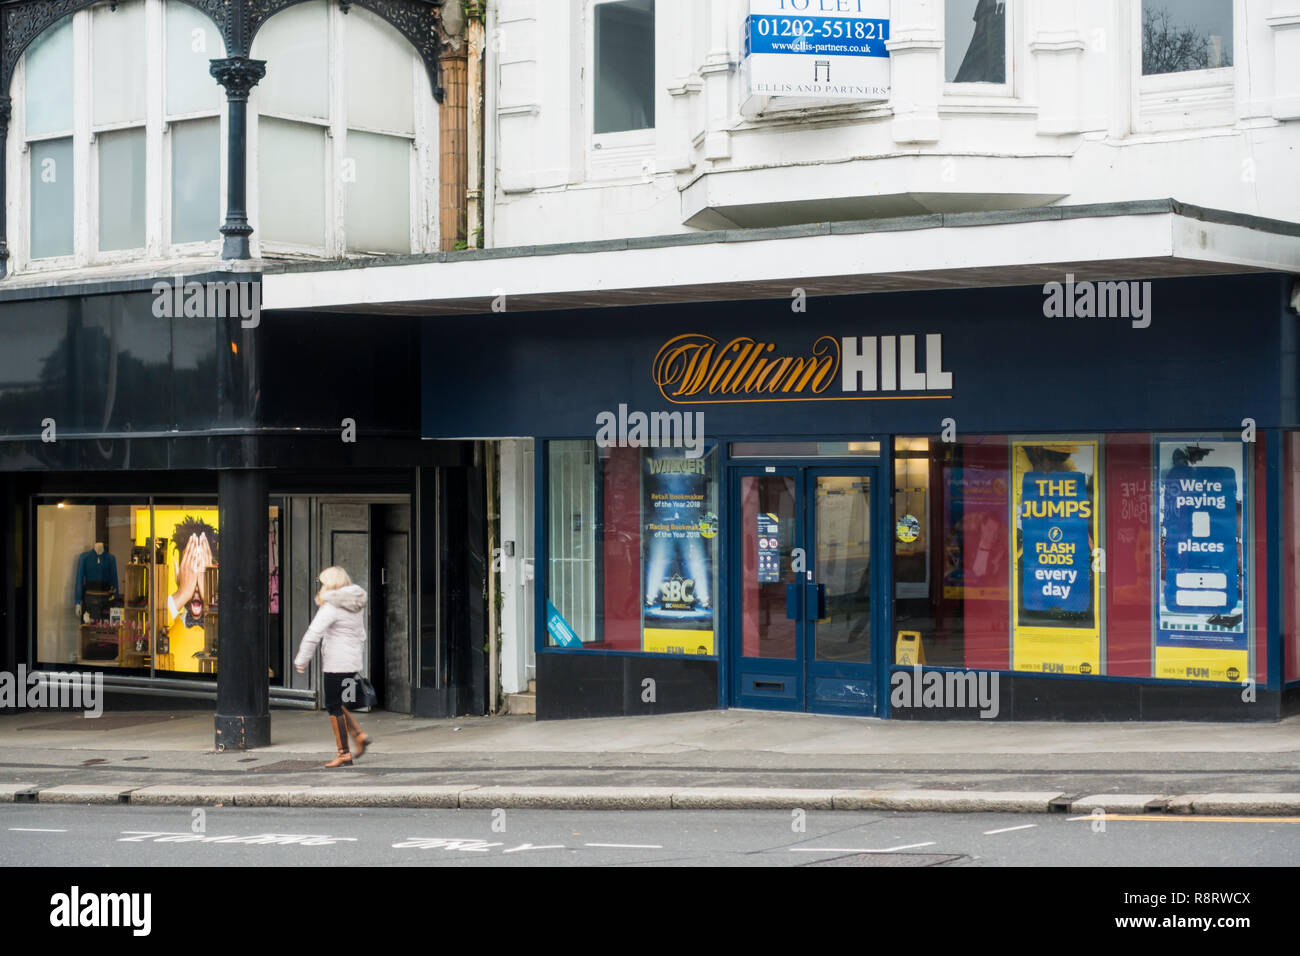 A William Hill betting shop, bookmakers, bookies on a UK high street, Bournemouth, United Kingdom - Stock Image